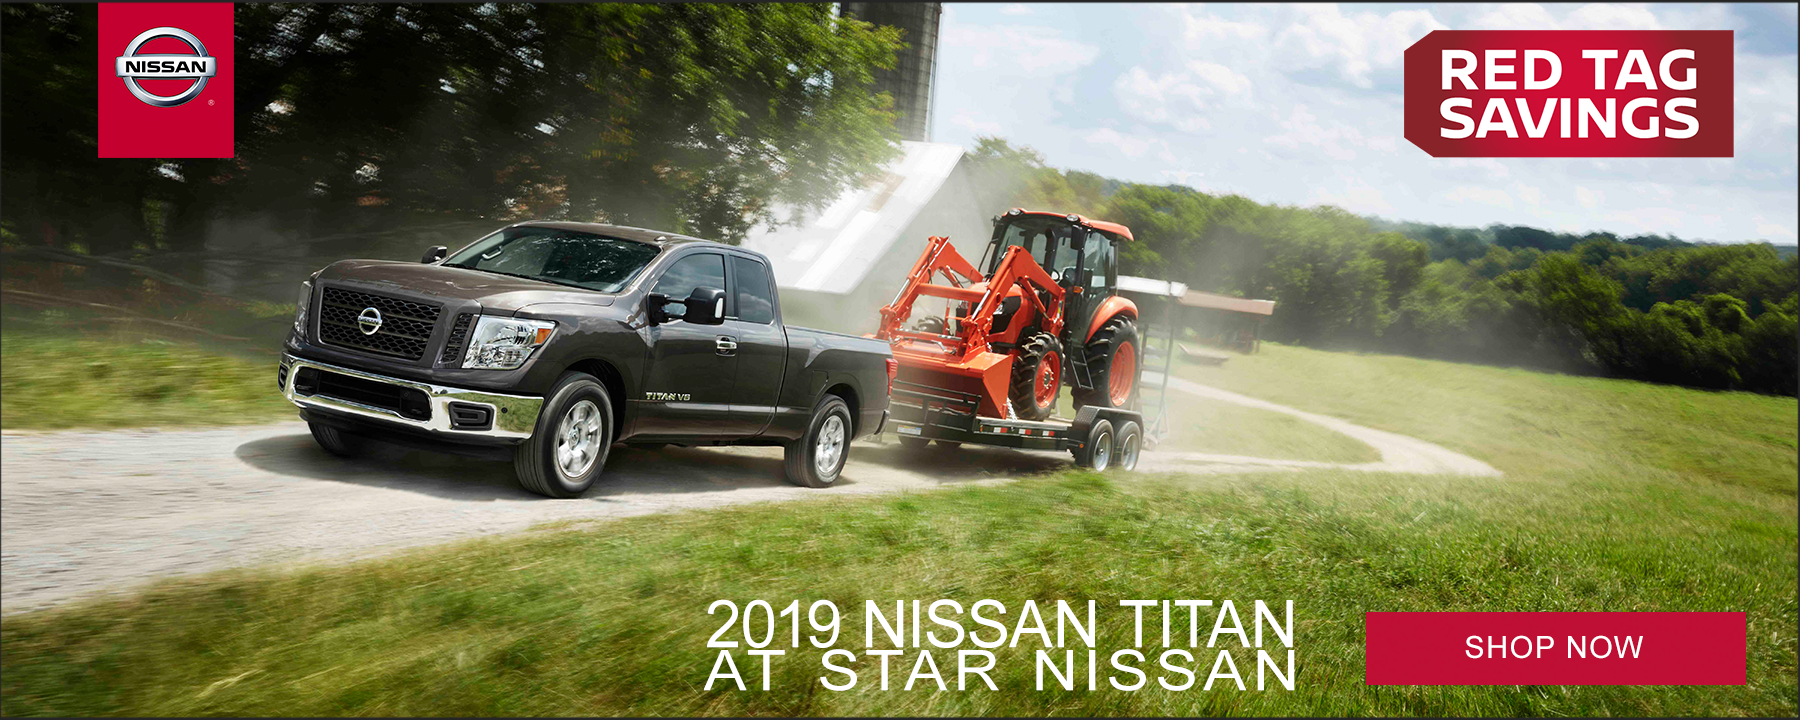 Red Tag Truck Sale on 2019 Nissan Titan at Star Nissan!